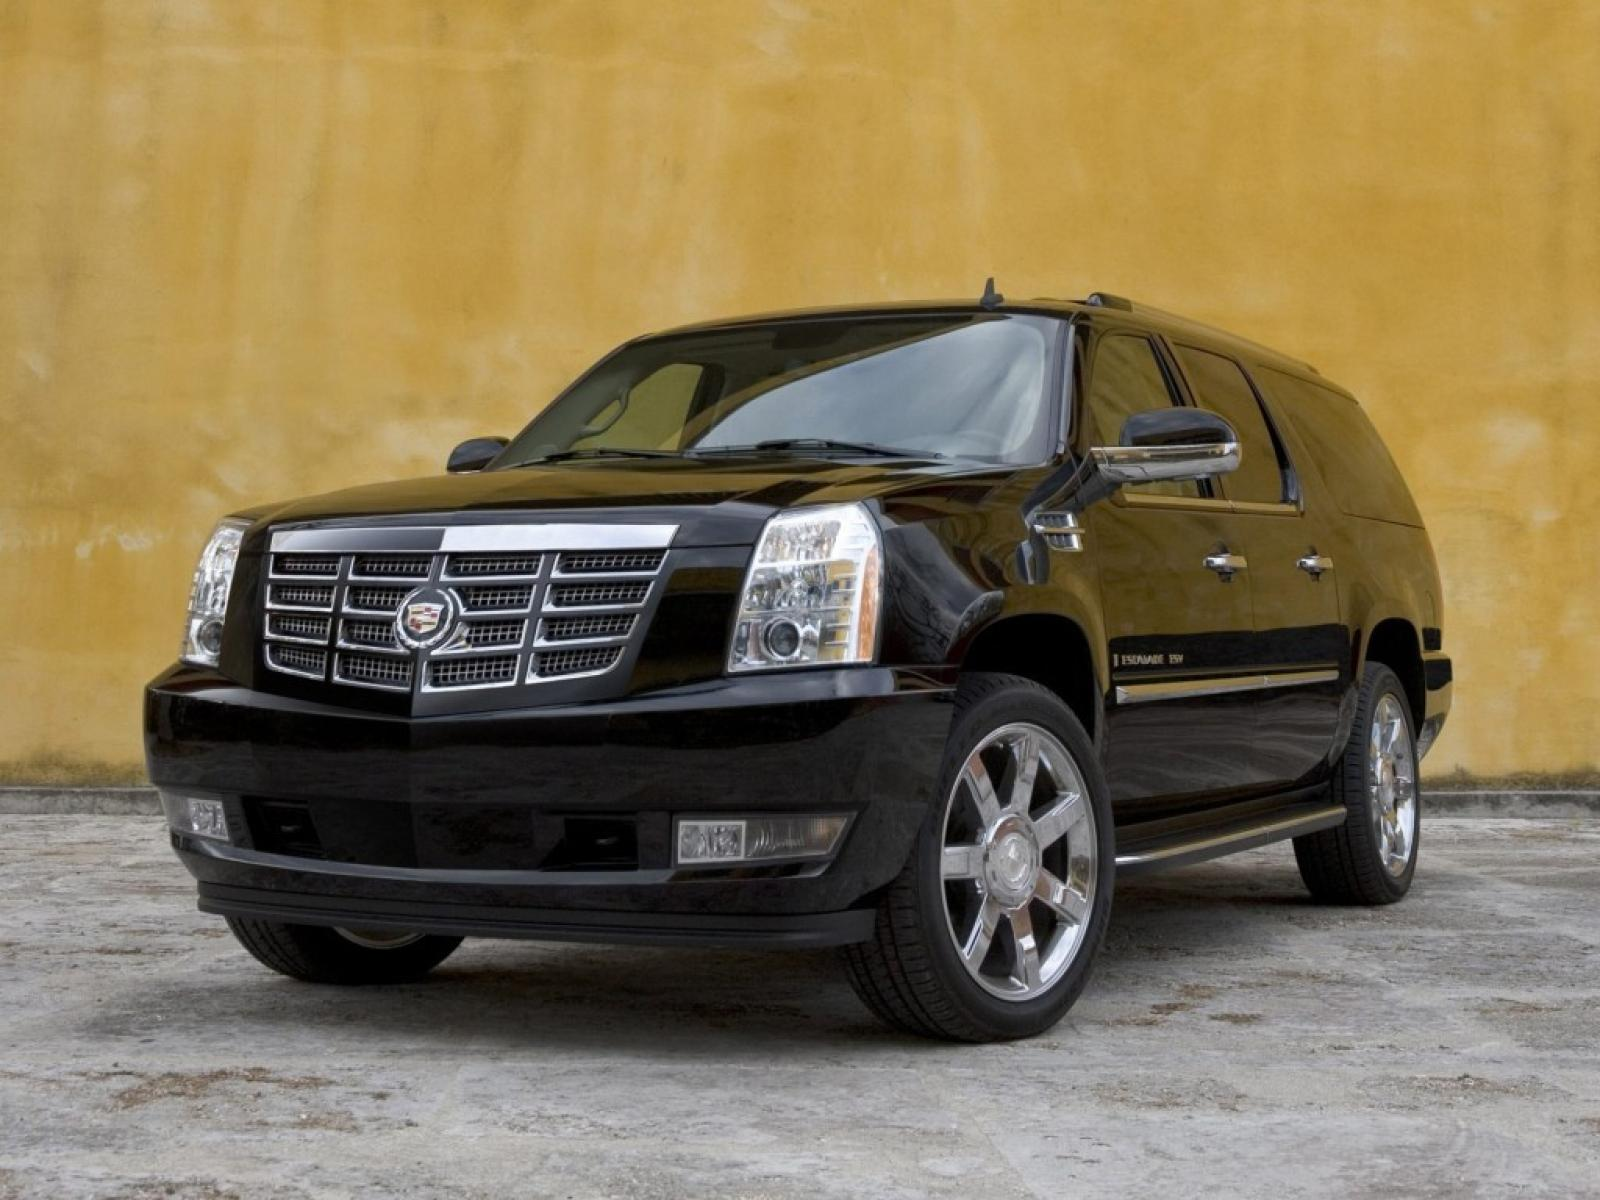 2013 cadillac escalade hybrid information and photos zombiedrive. Cars Review. Best American Auto & Cars Review